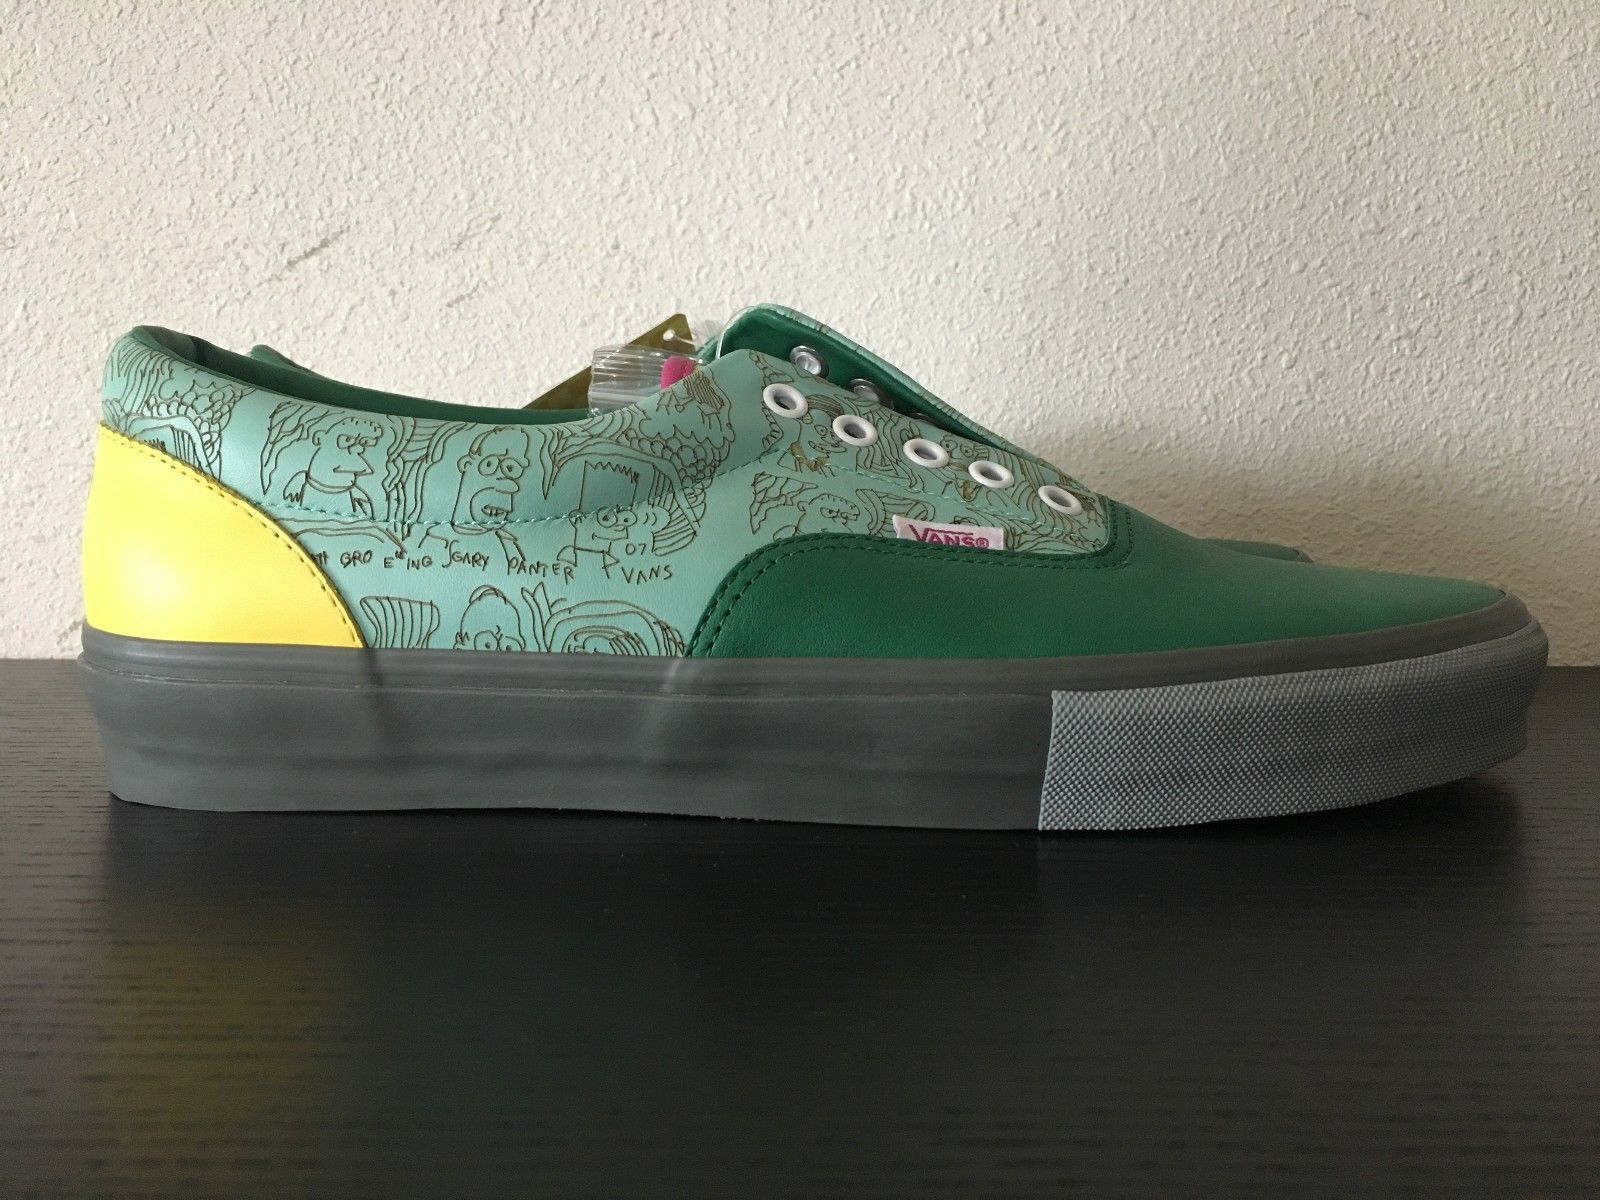 Vans Era Lx Gary Panter Simpsons Movie 12 Ds In Box 1 Of 100 2007 The Simpsons Movie Vans Simpson